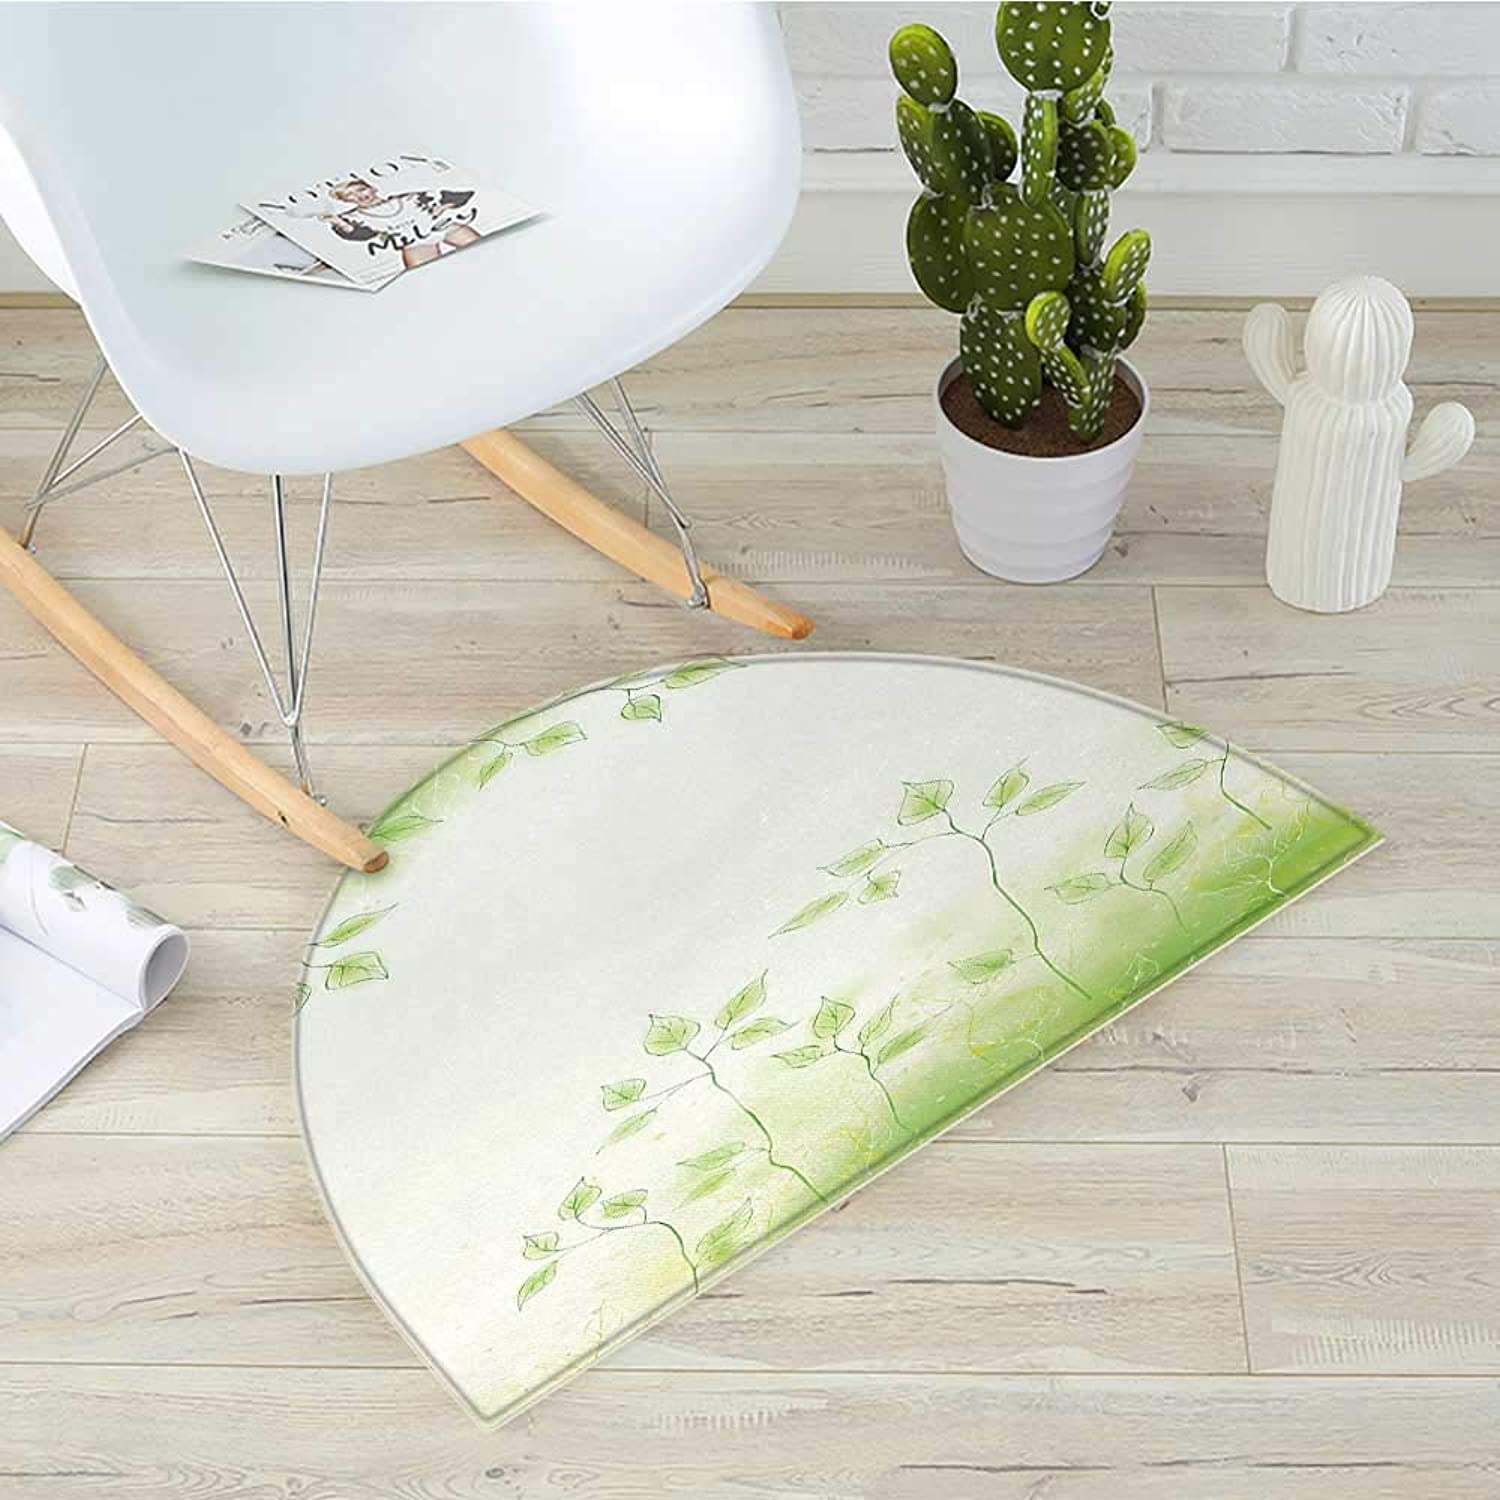 Forest Semicircular CushionFresh Foliage Design with Pastel colord Leaves Botanic Environment Eco Purity Image Entry Door Mat H 39.3  xD 59  Soft Green